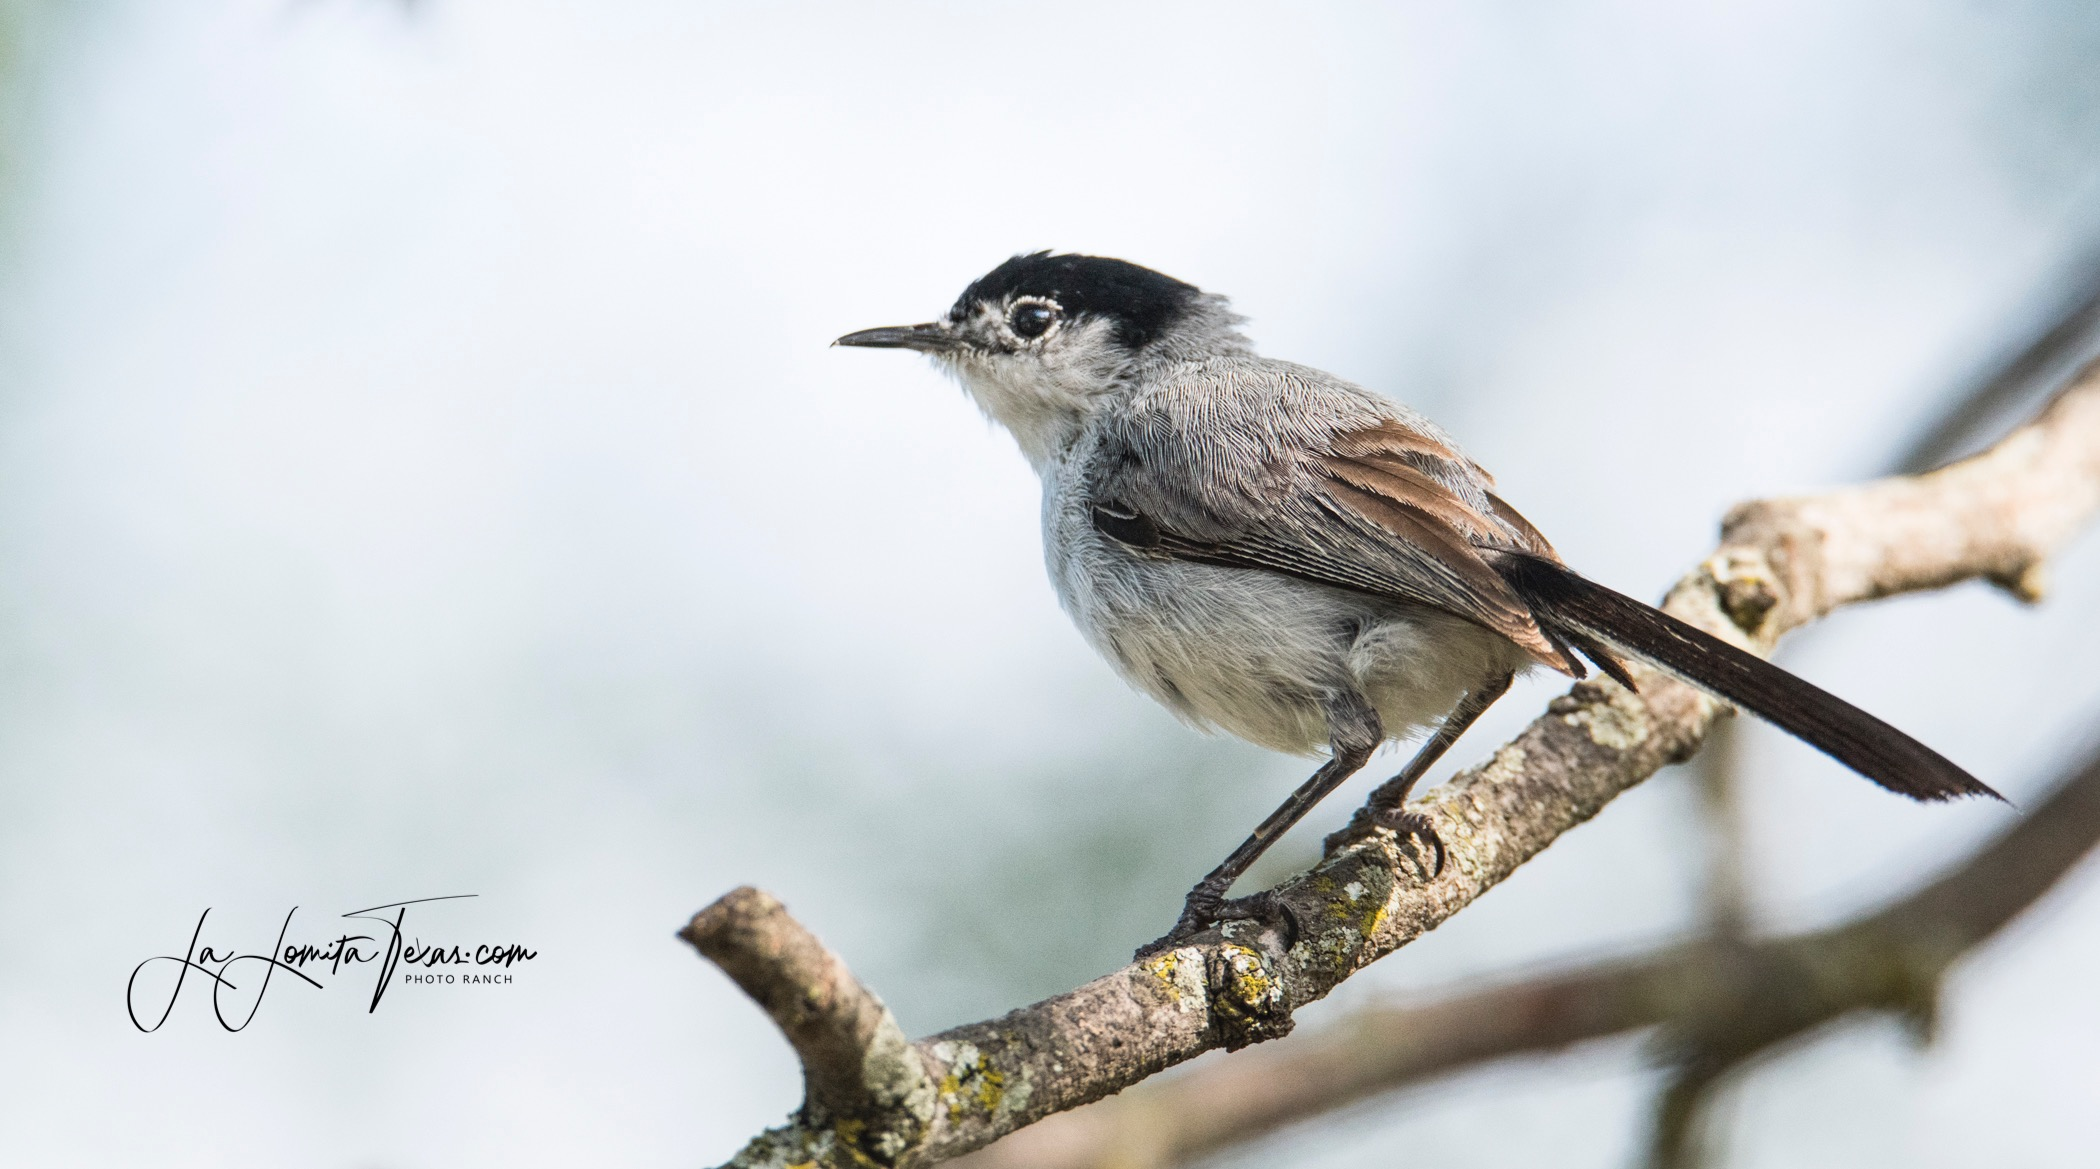 Black-tailed%20Gnatcatcher%20LL_edited